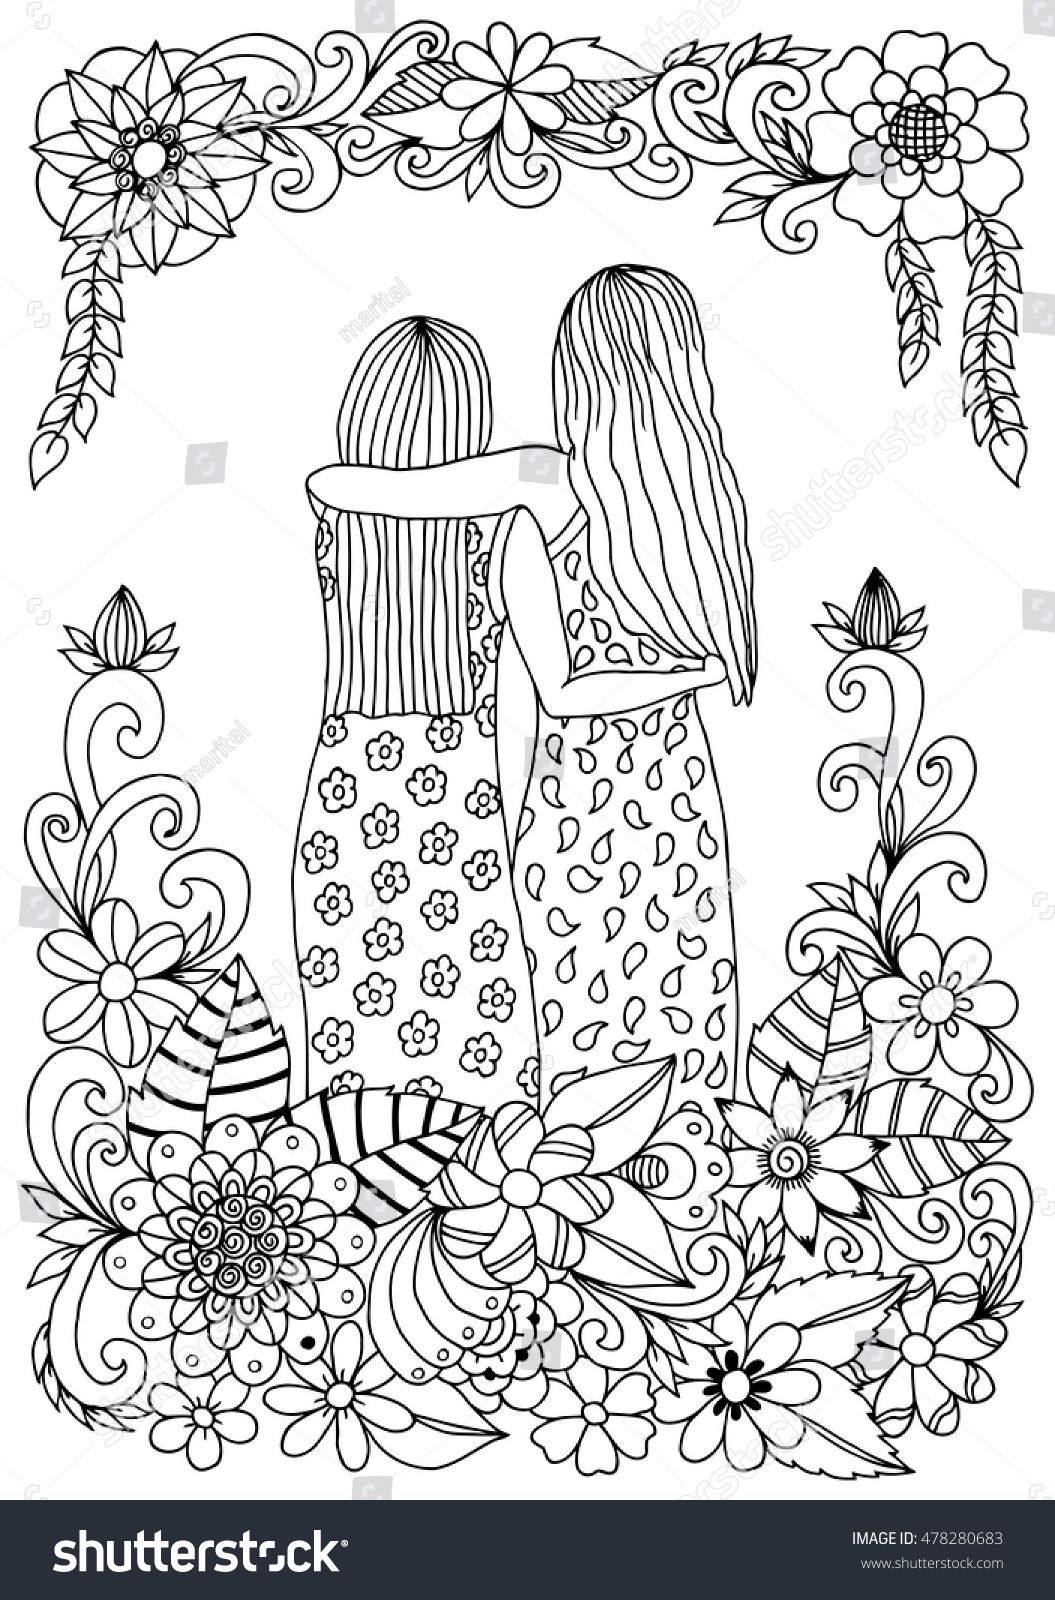 Stock Vector Vector Illustration Zen Tangle Two Sisters In Flowers Dudling Coloring Book Anti Stress For 4782 Coloring Pages Free Coloring Pages Coloring Books